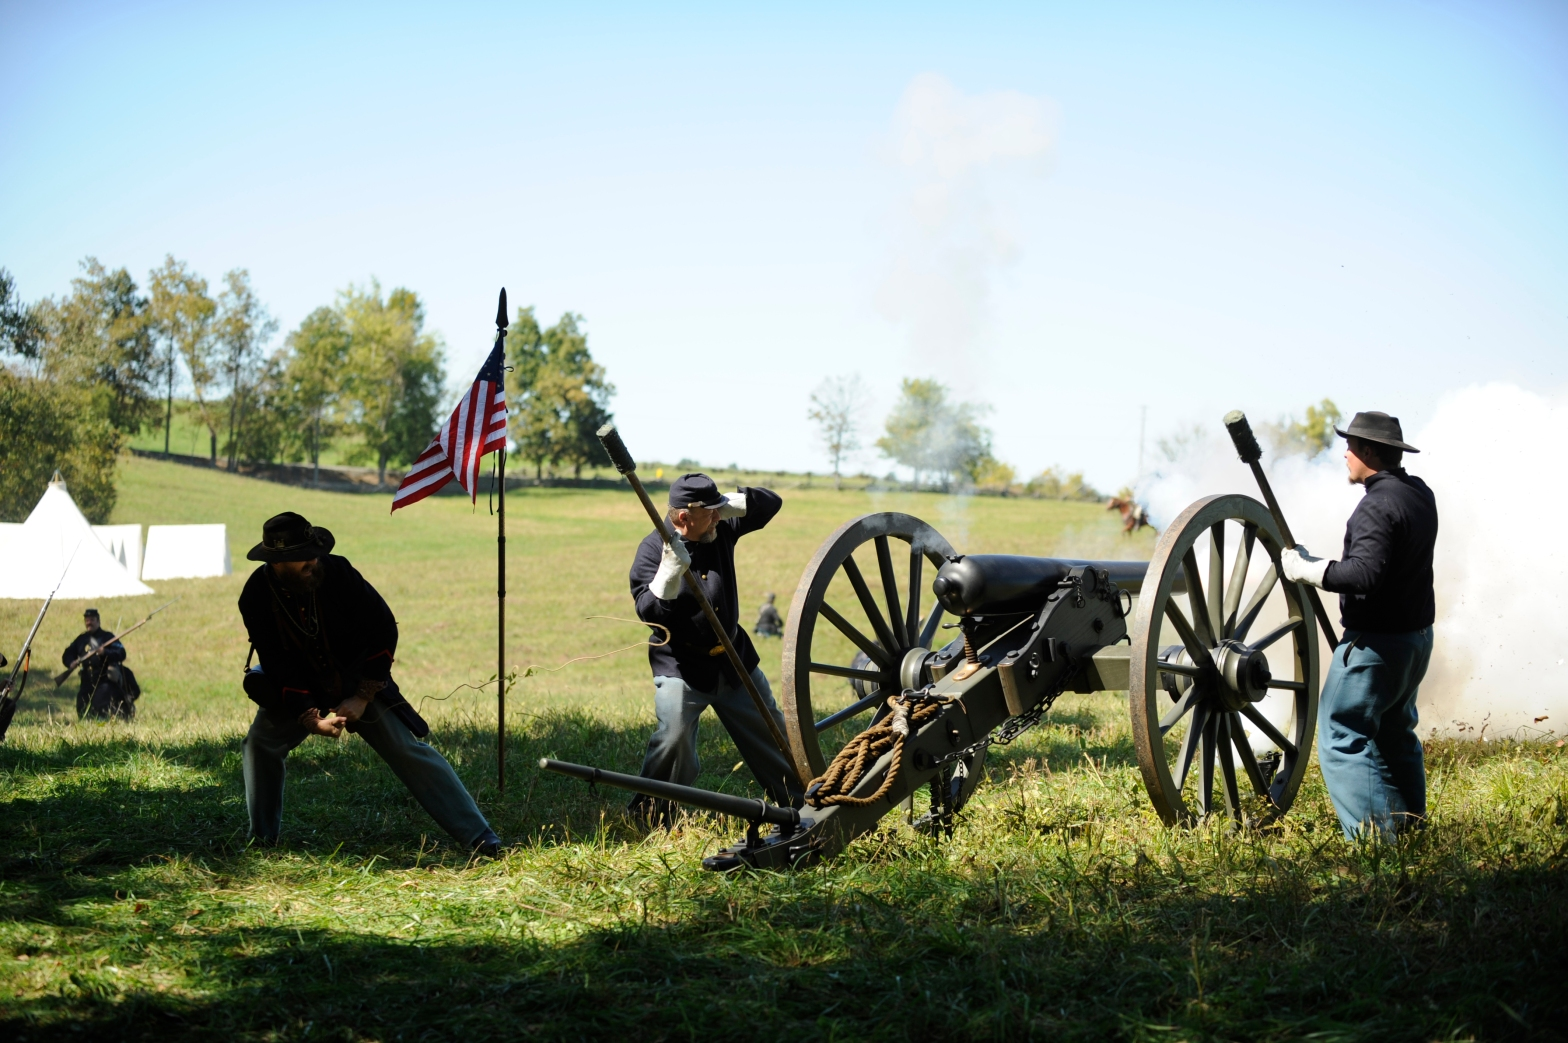 The Battle of Perryville Reenactment in Perryville, Kentucky Civil War